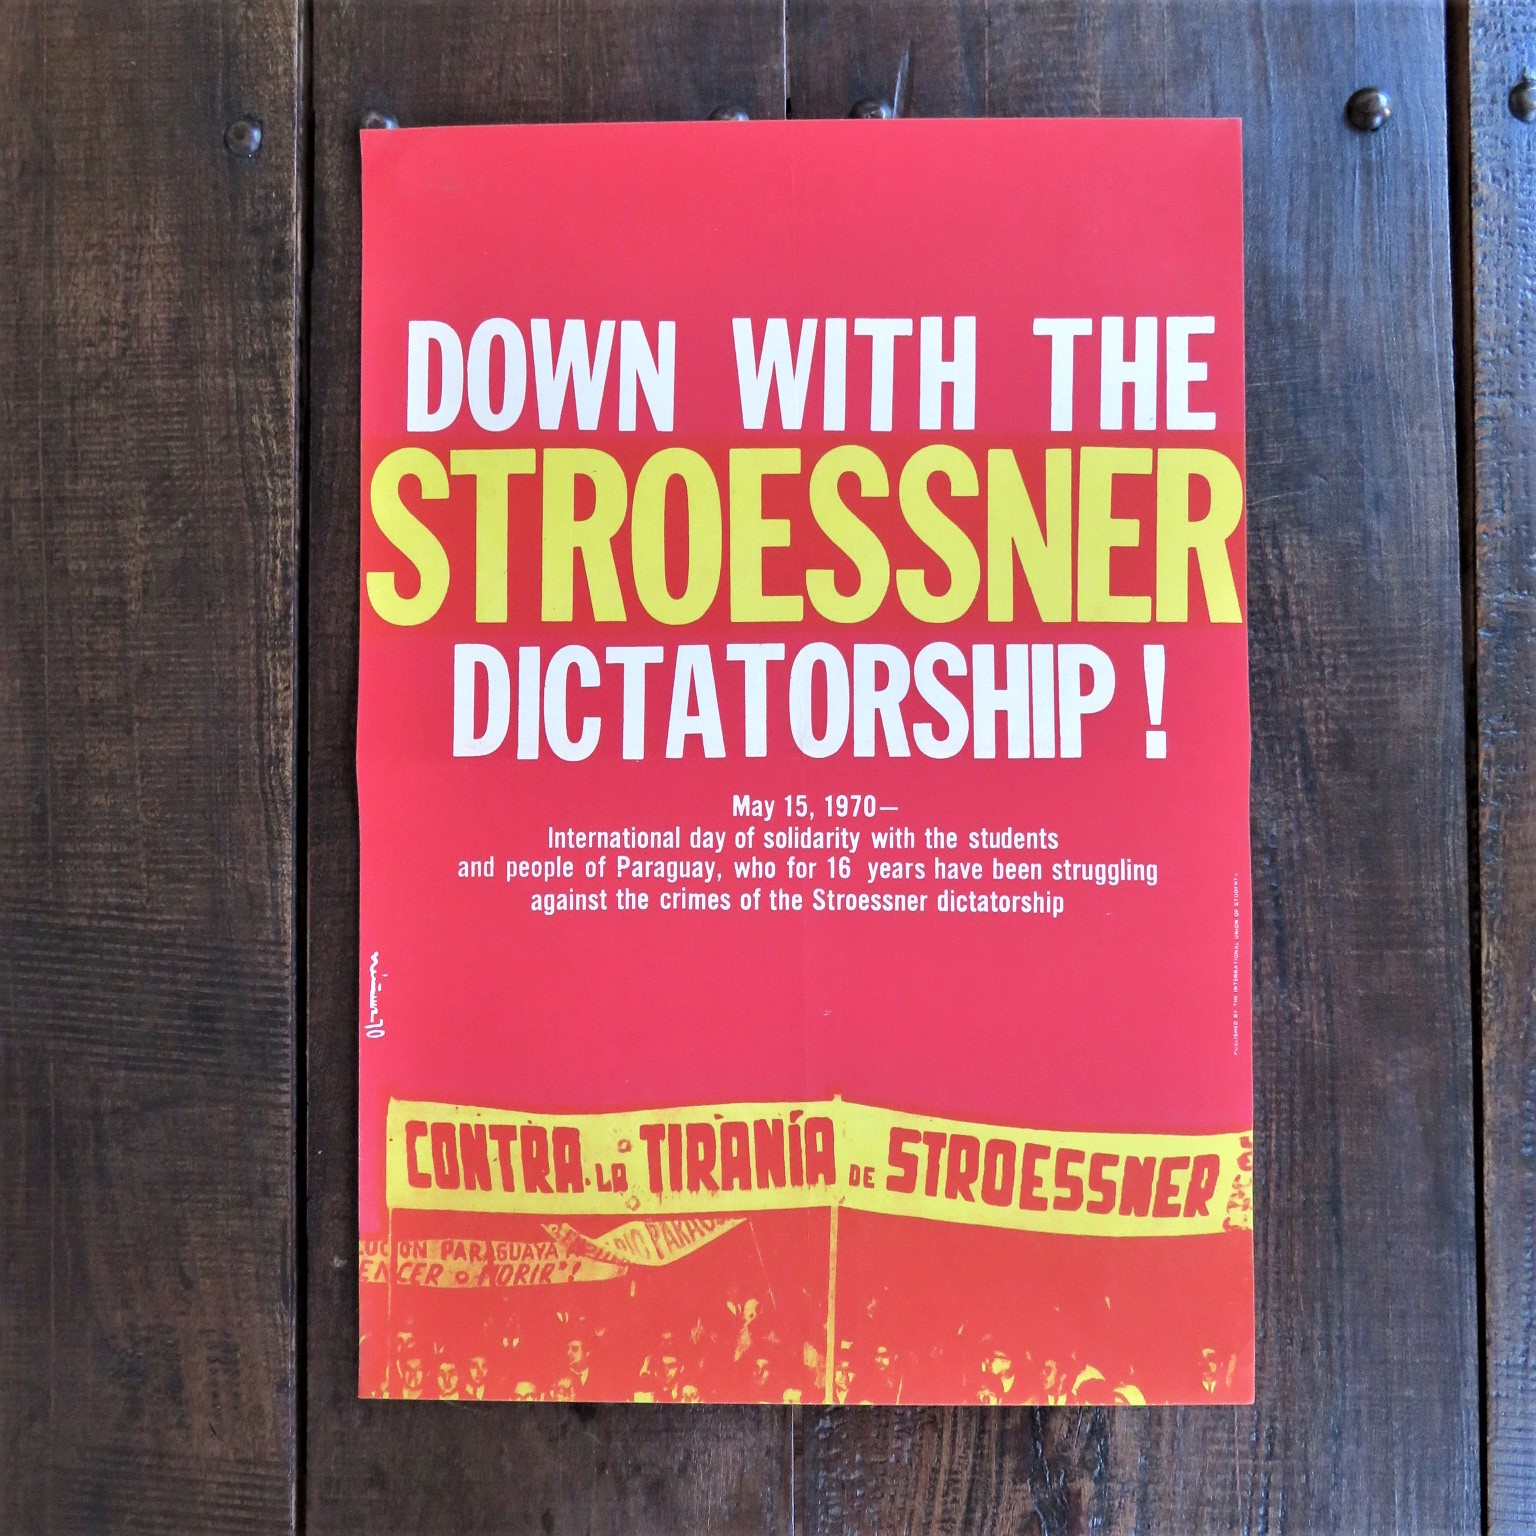 poster-down-with-the-stroessner-dictatorship-1